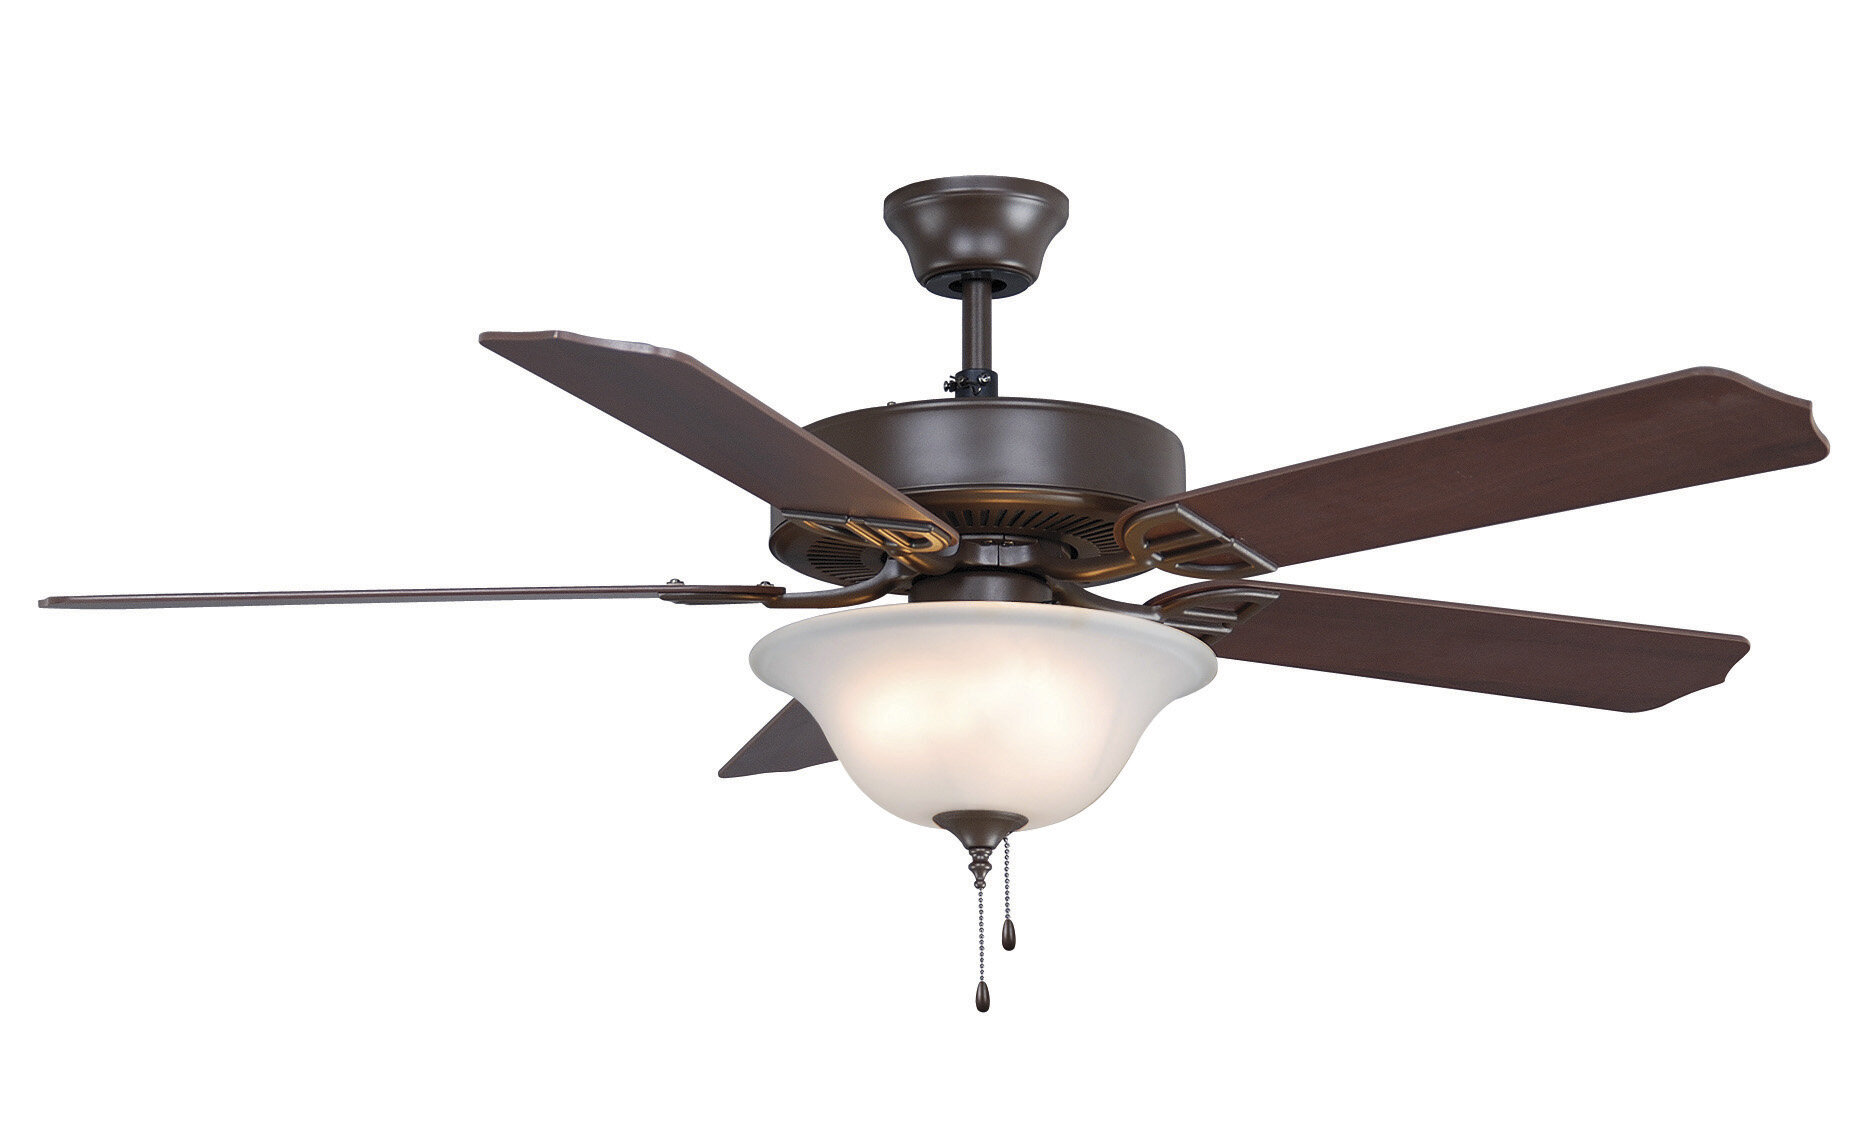 Fanimation 52 Aire 5 Blade Led Standard Ceiling Fan With Pull Chain And Light Kit Included Wayfair